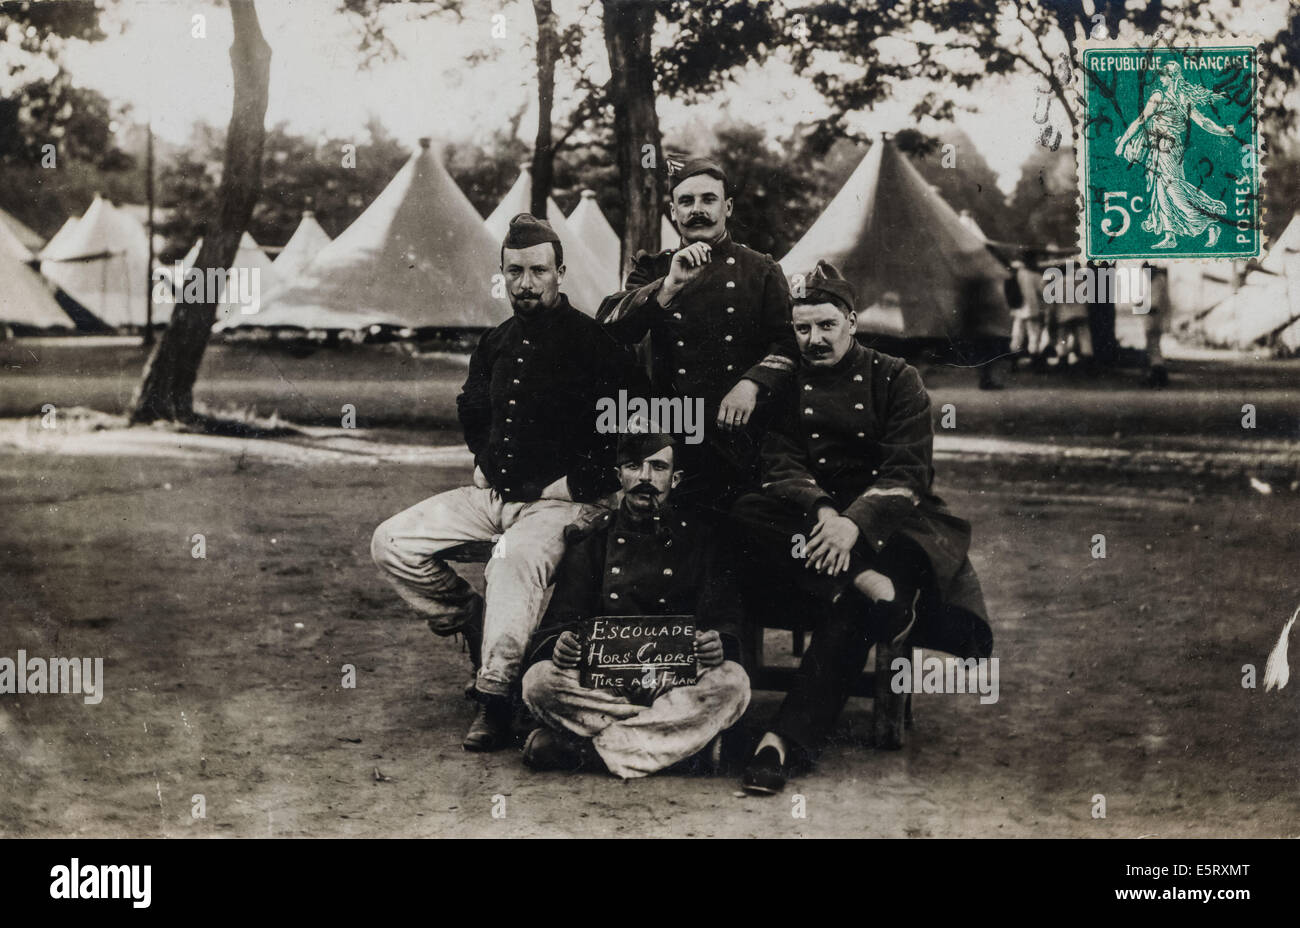 French soldiers during the First World War. - Stock Image